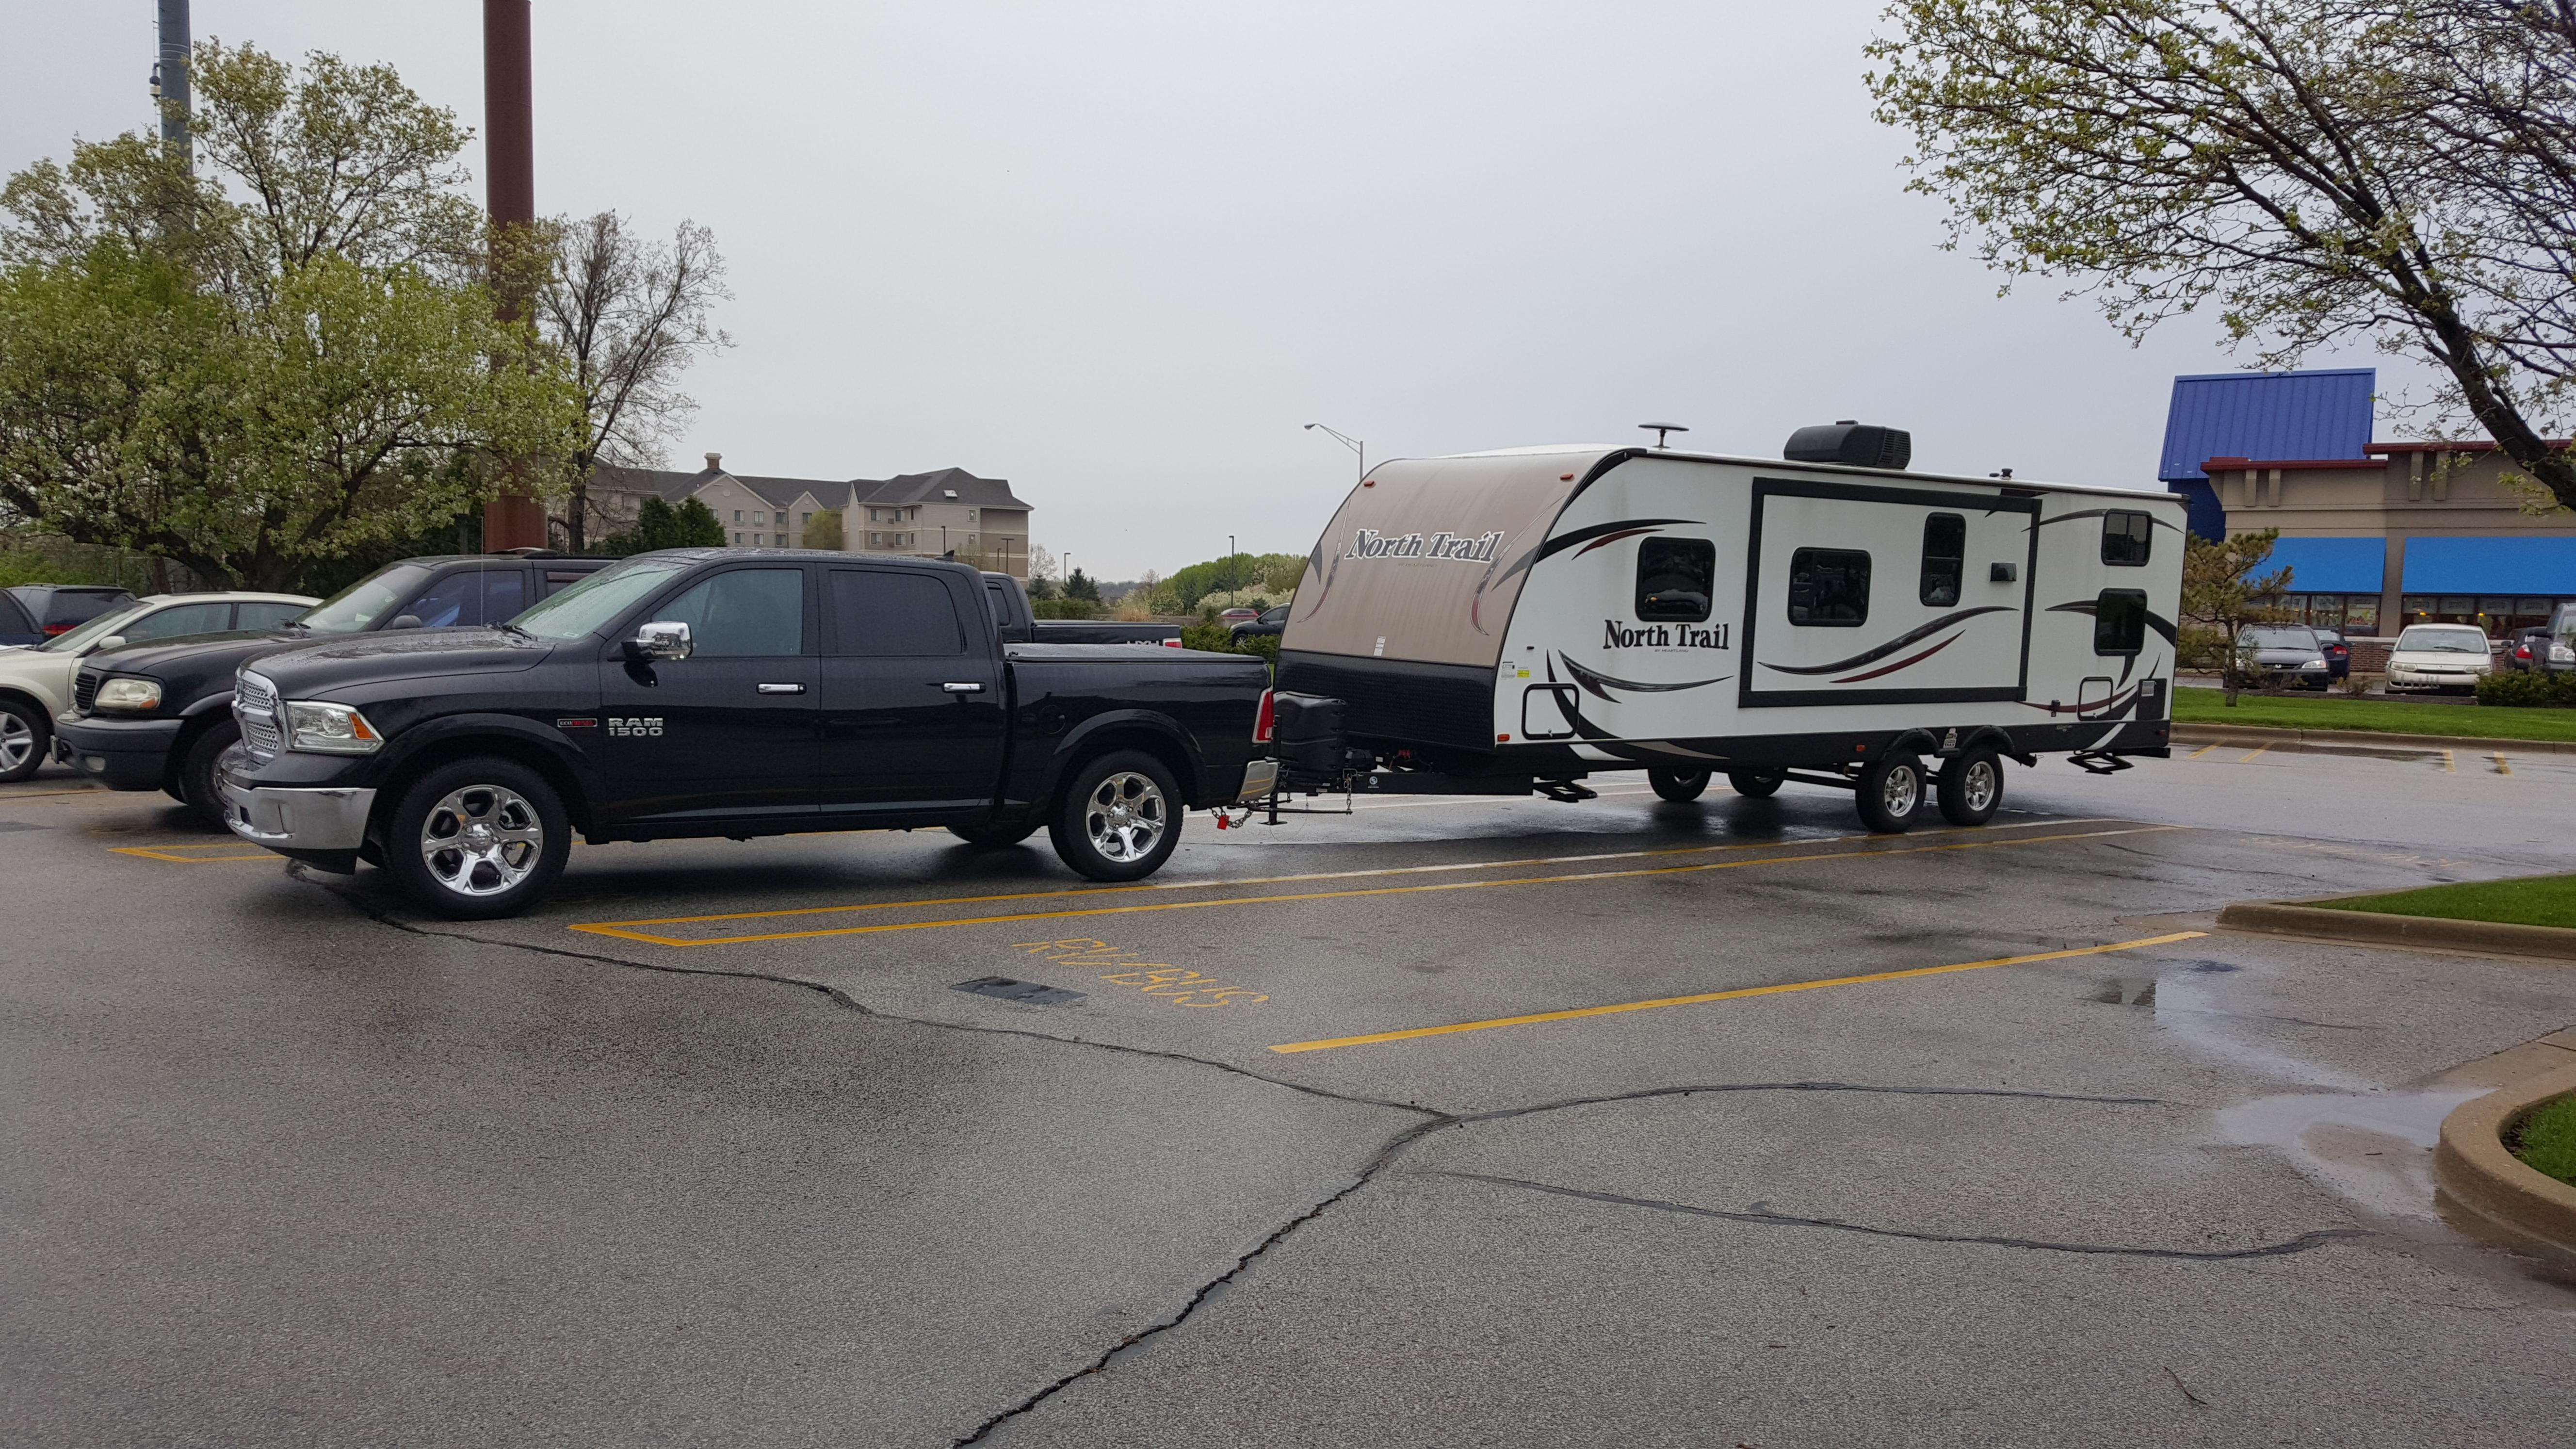 Ram Towing Capacity >> The Top End Of Towing Capacity And Experience